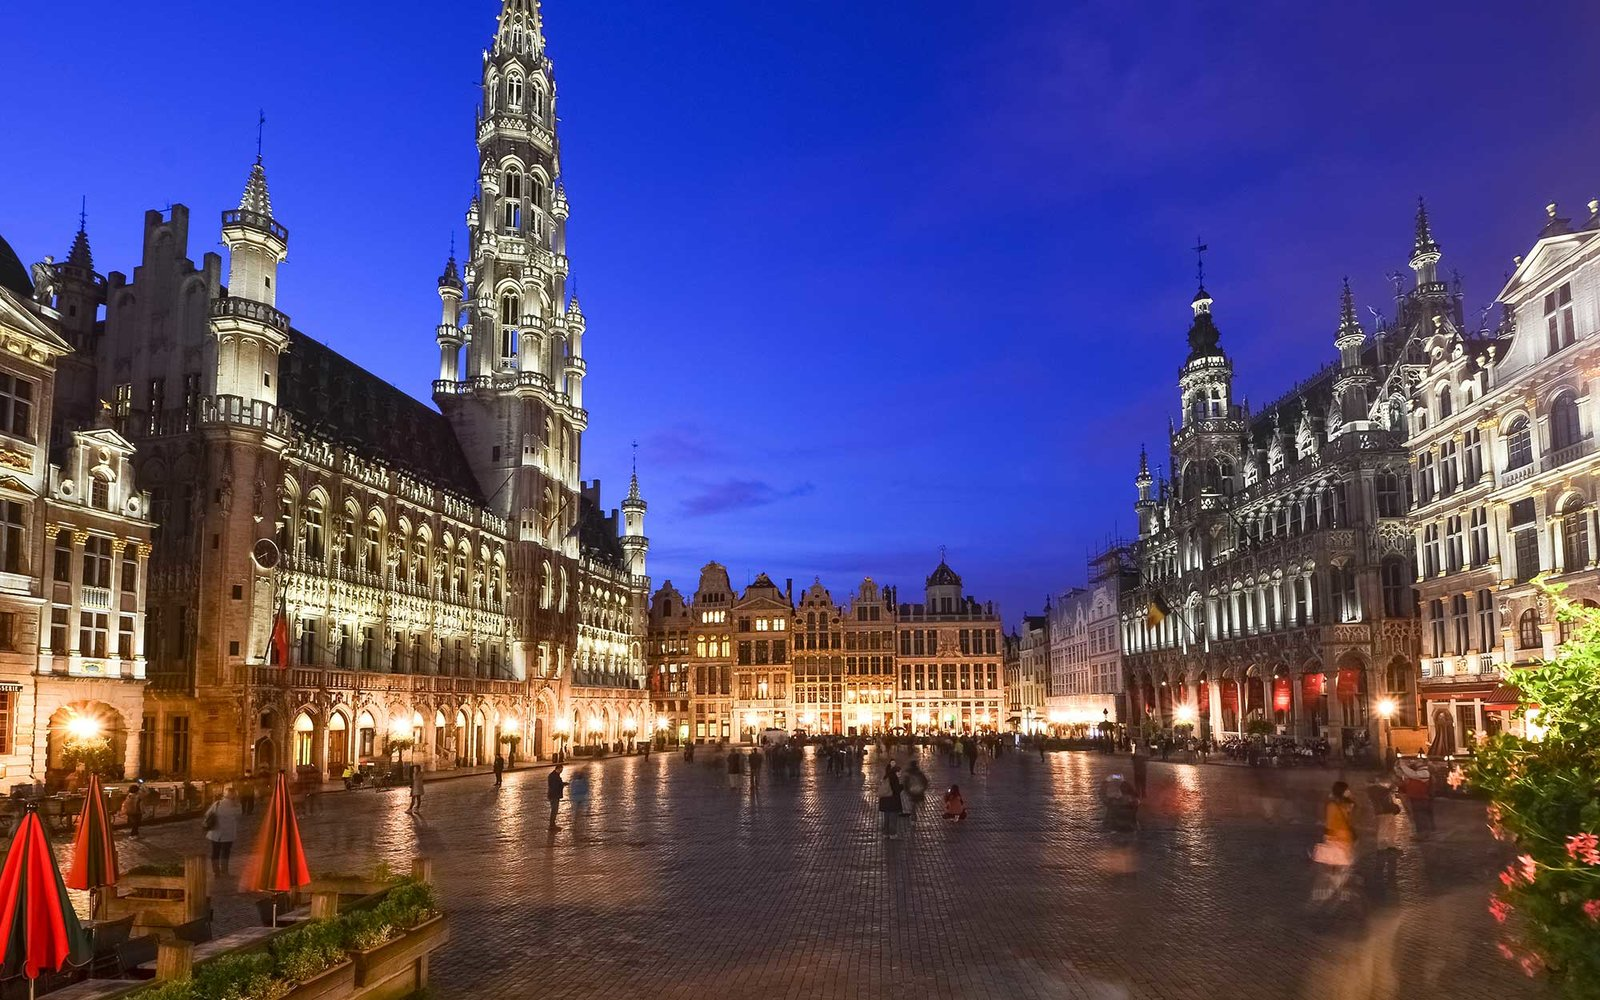 http://www.travelandleisure.com/travel-guide/brussels